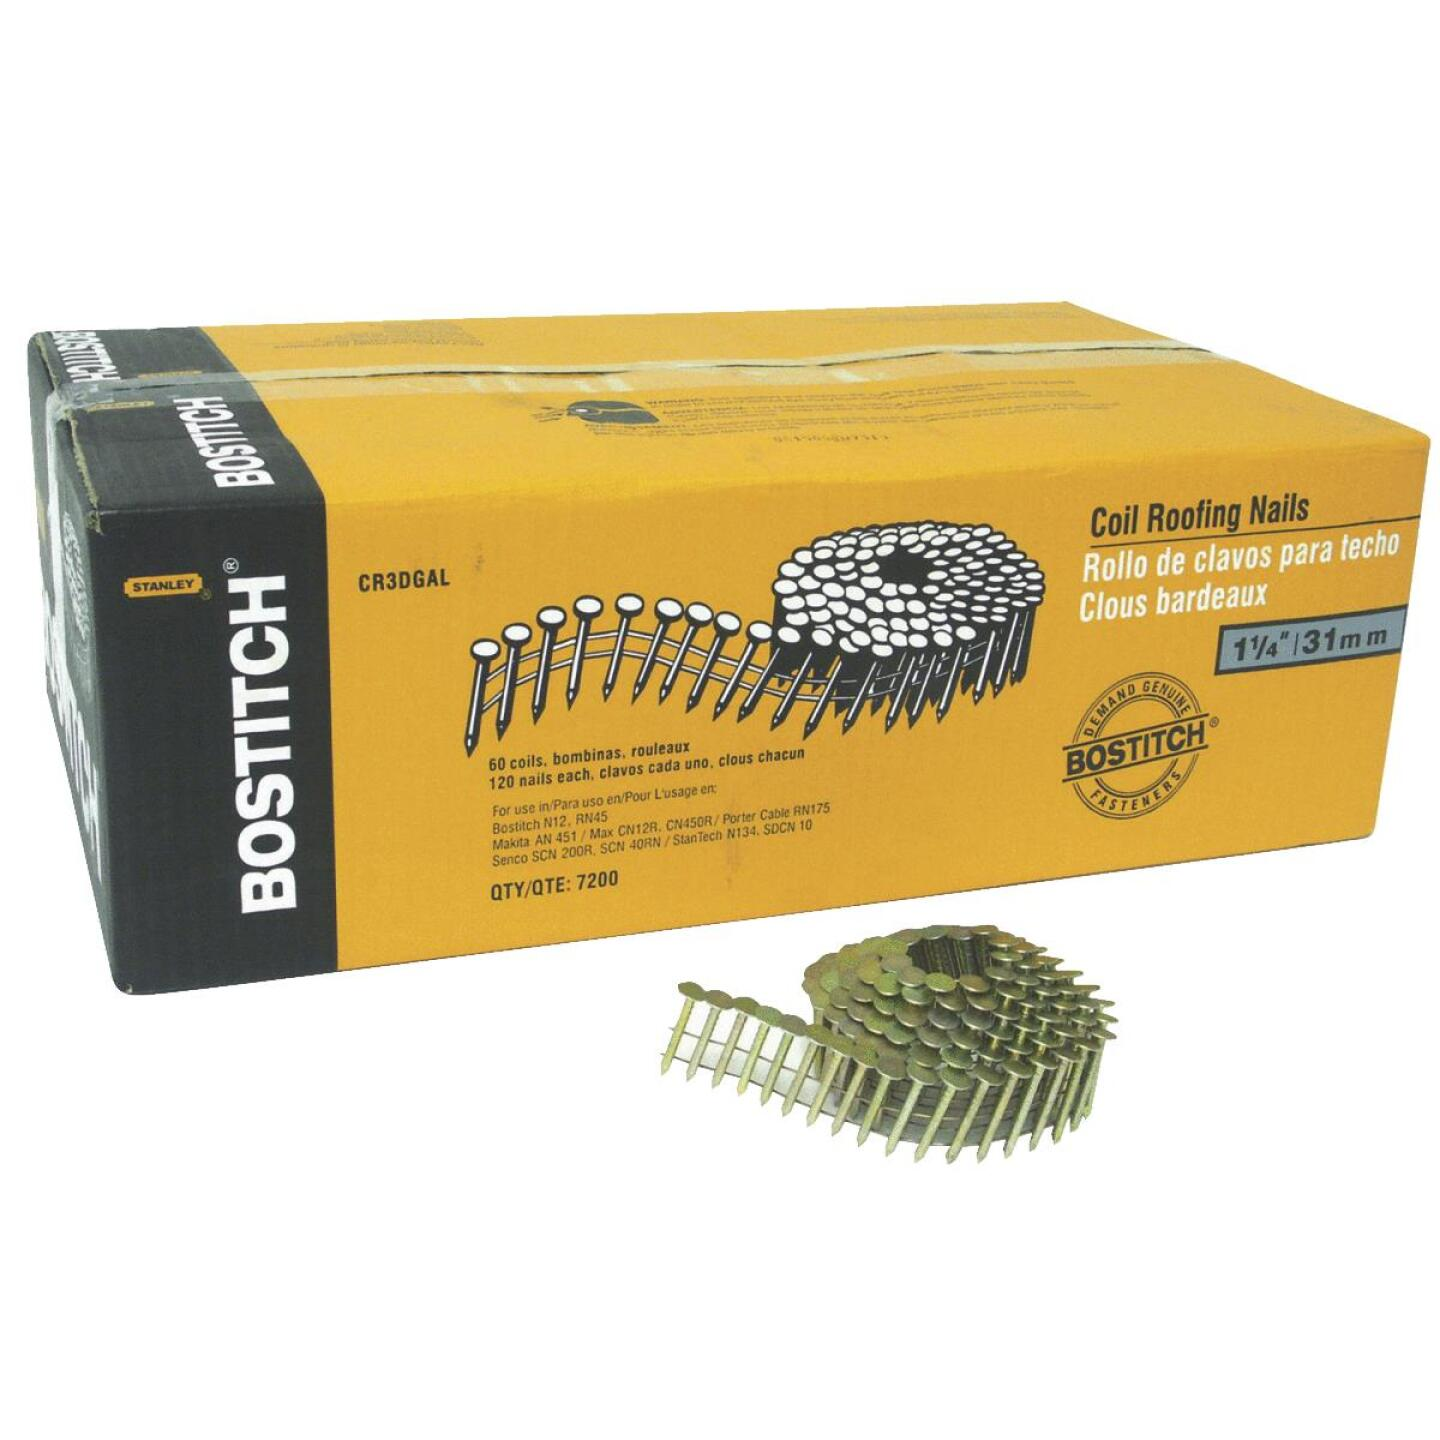 Bostitch 15 Degree Wire Weld Galvanized Coil Roofing Nail, 1-1/4 In. x .120 In. (7200 Ct.) Image 1